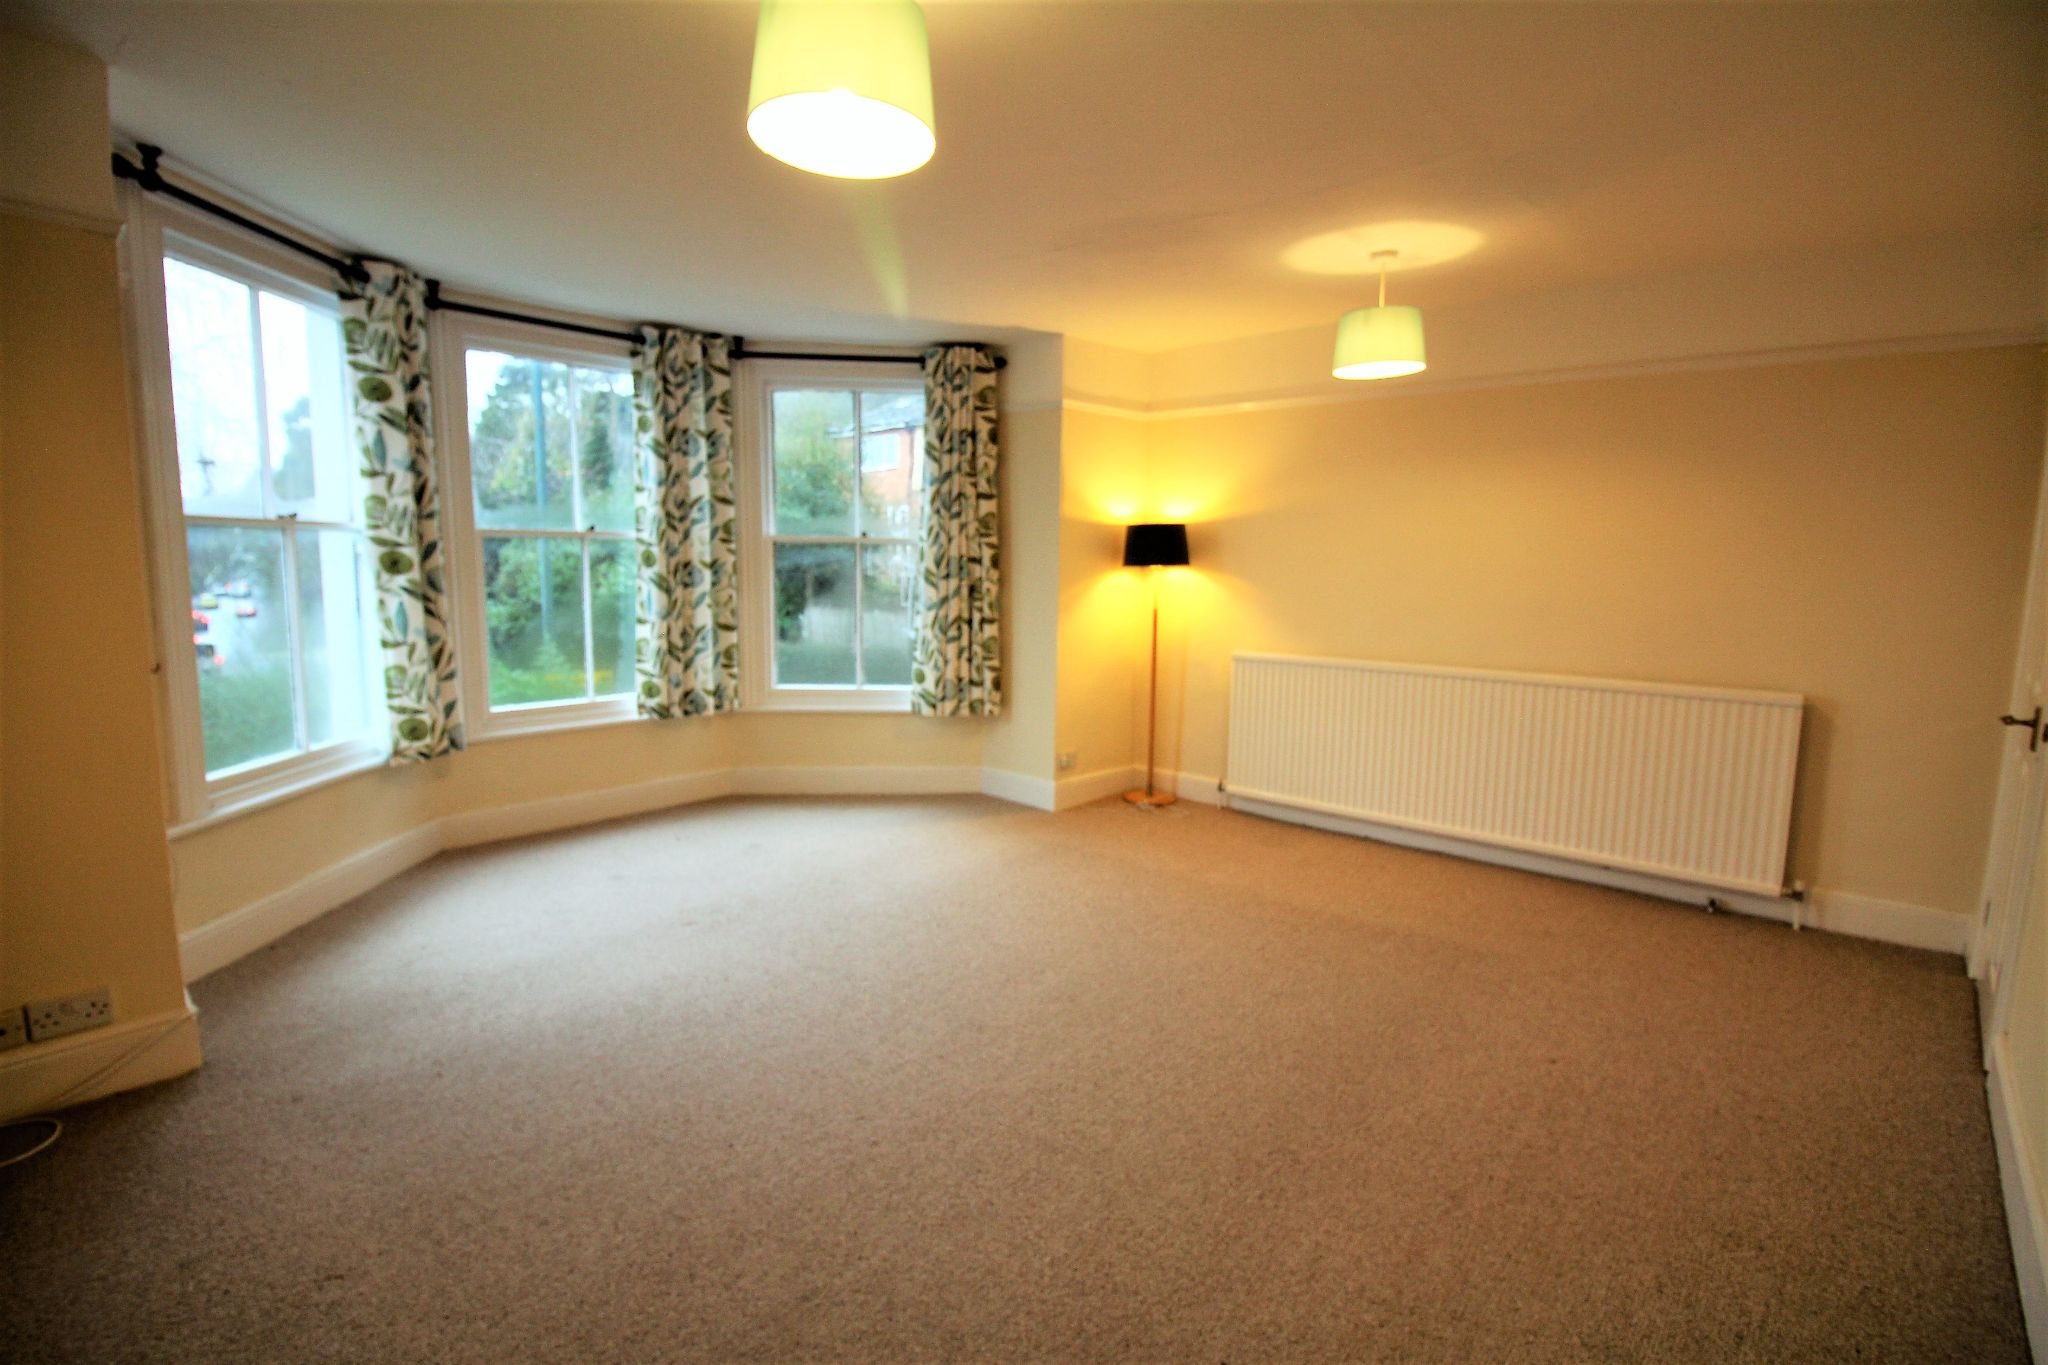 1 bedroom apartment flat/apartment For Sale in Malvern Hills - Property photograph.